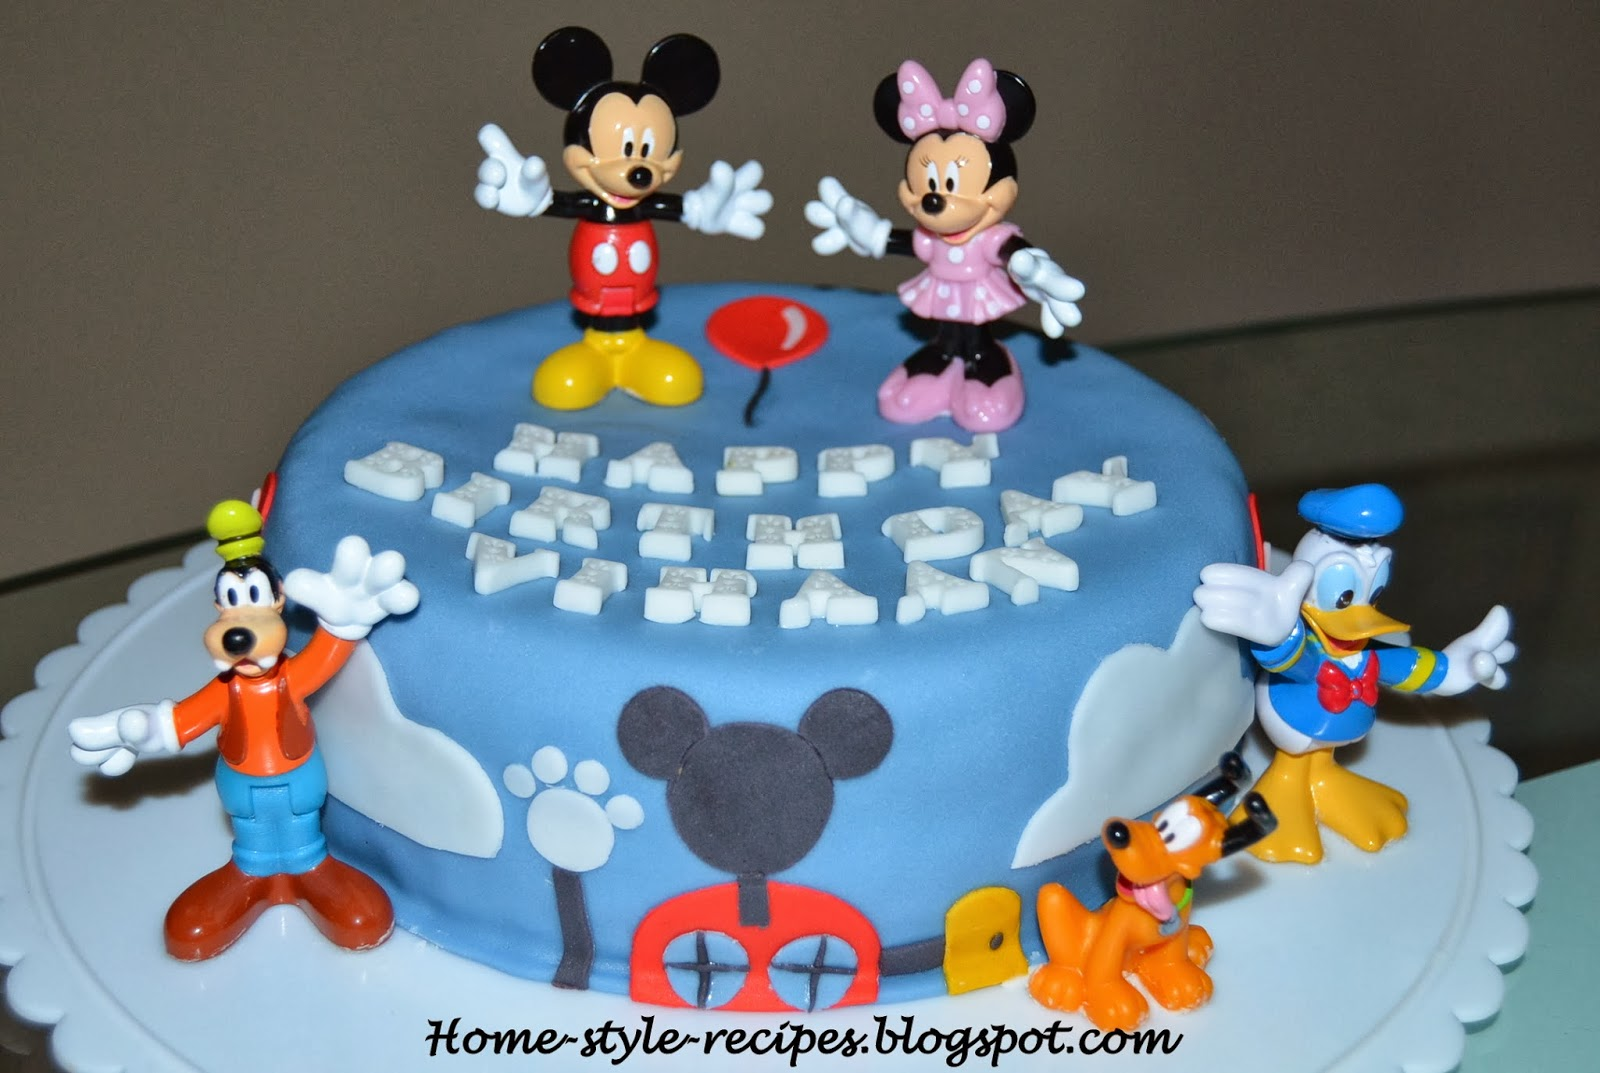 This Mickey Mouse Birthday Cake Is Designed For A 1 Year Old Boy Vihaan Who Loves His Friends